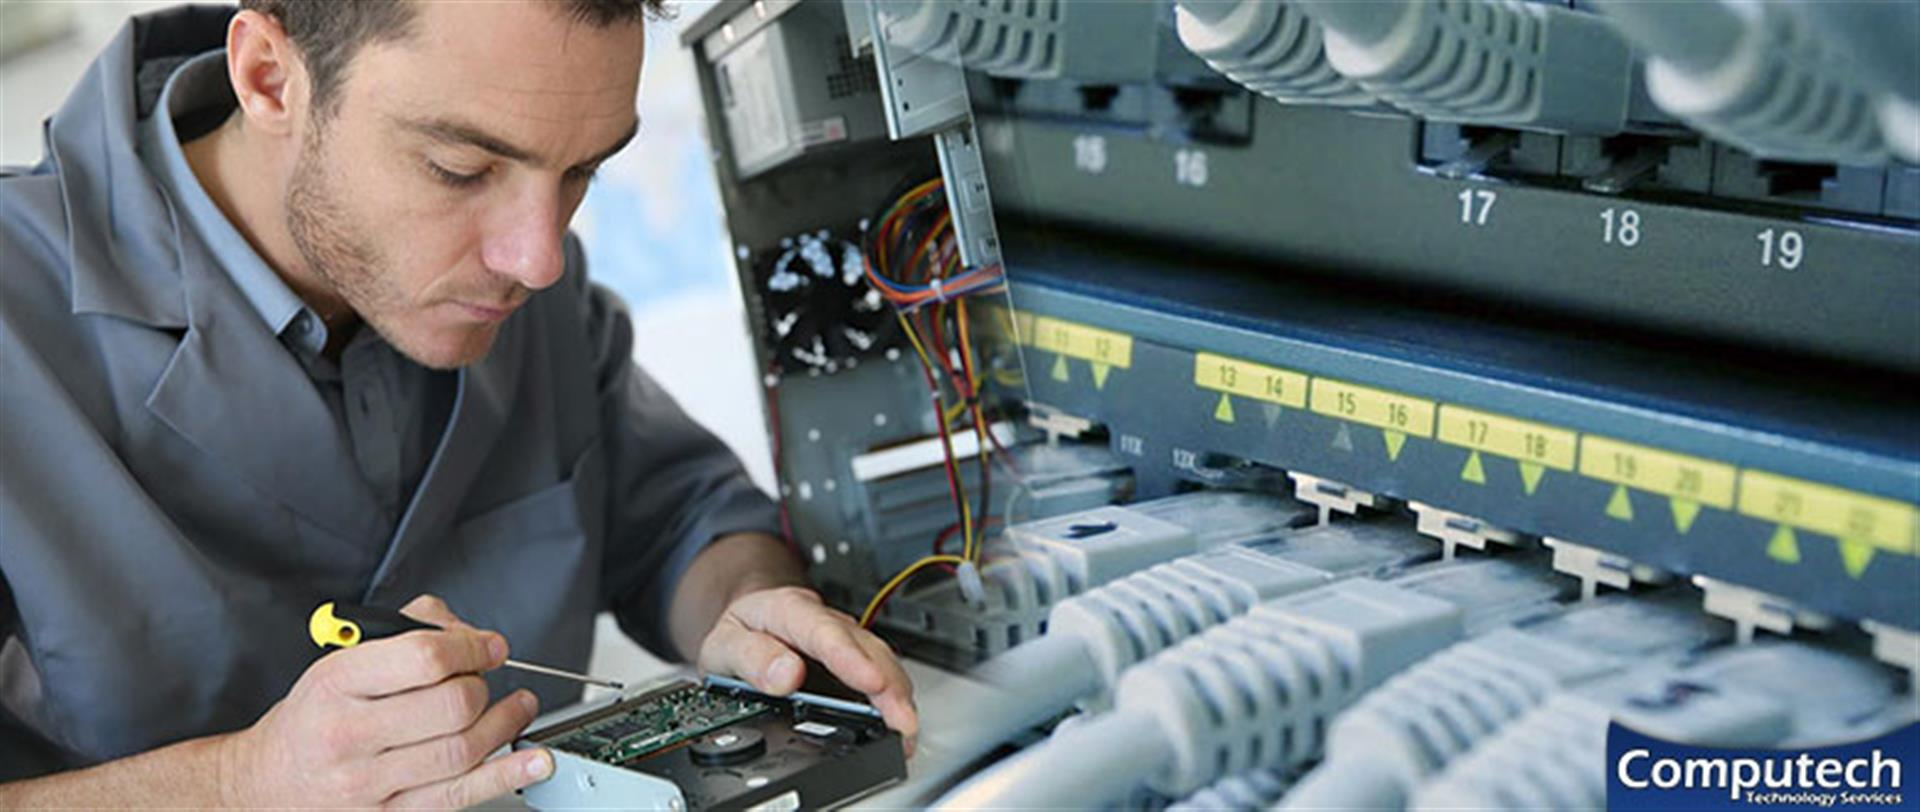 Warrenton Virginia On Site Computer & Printer Repairs, Networks, Voice & Data Cabling Solutions